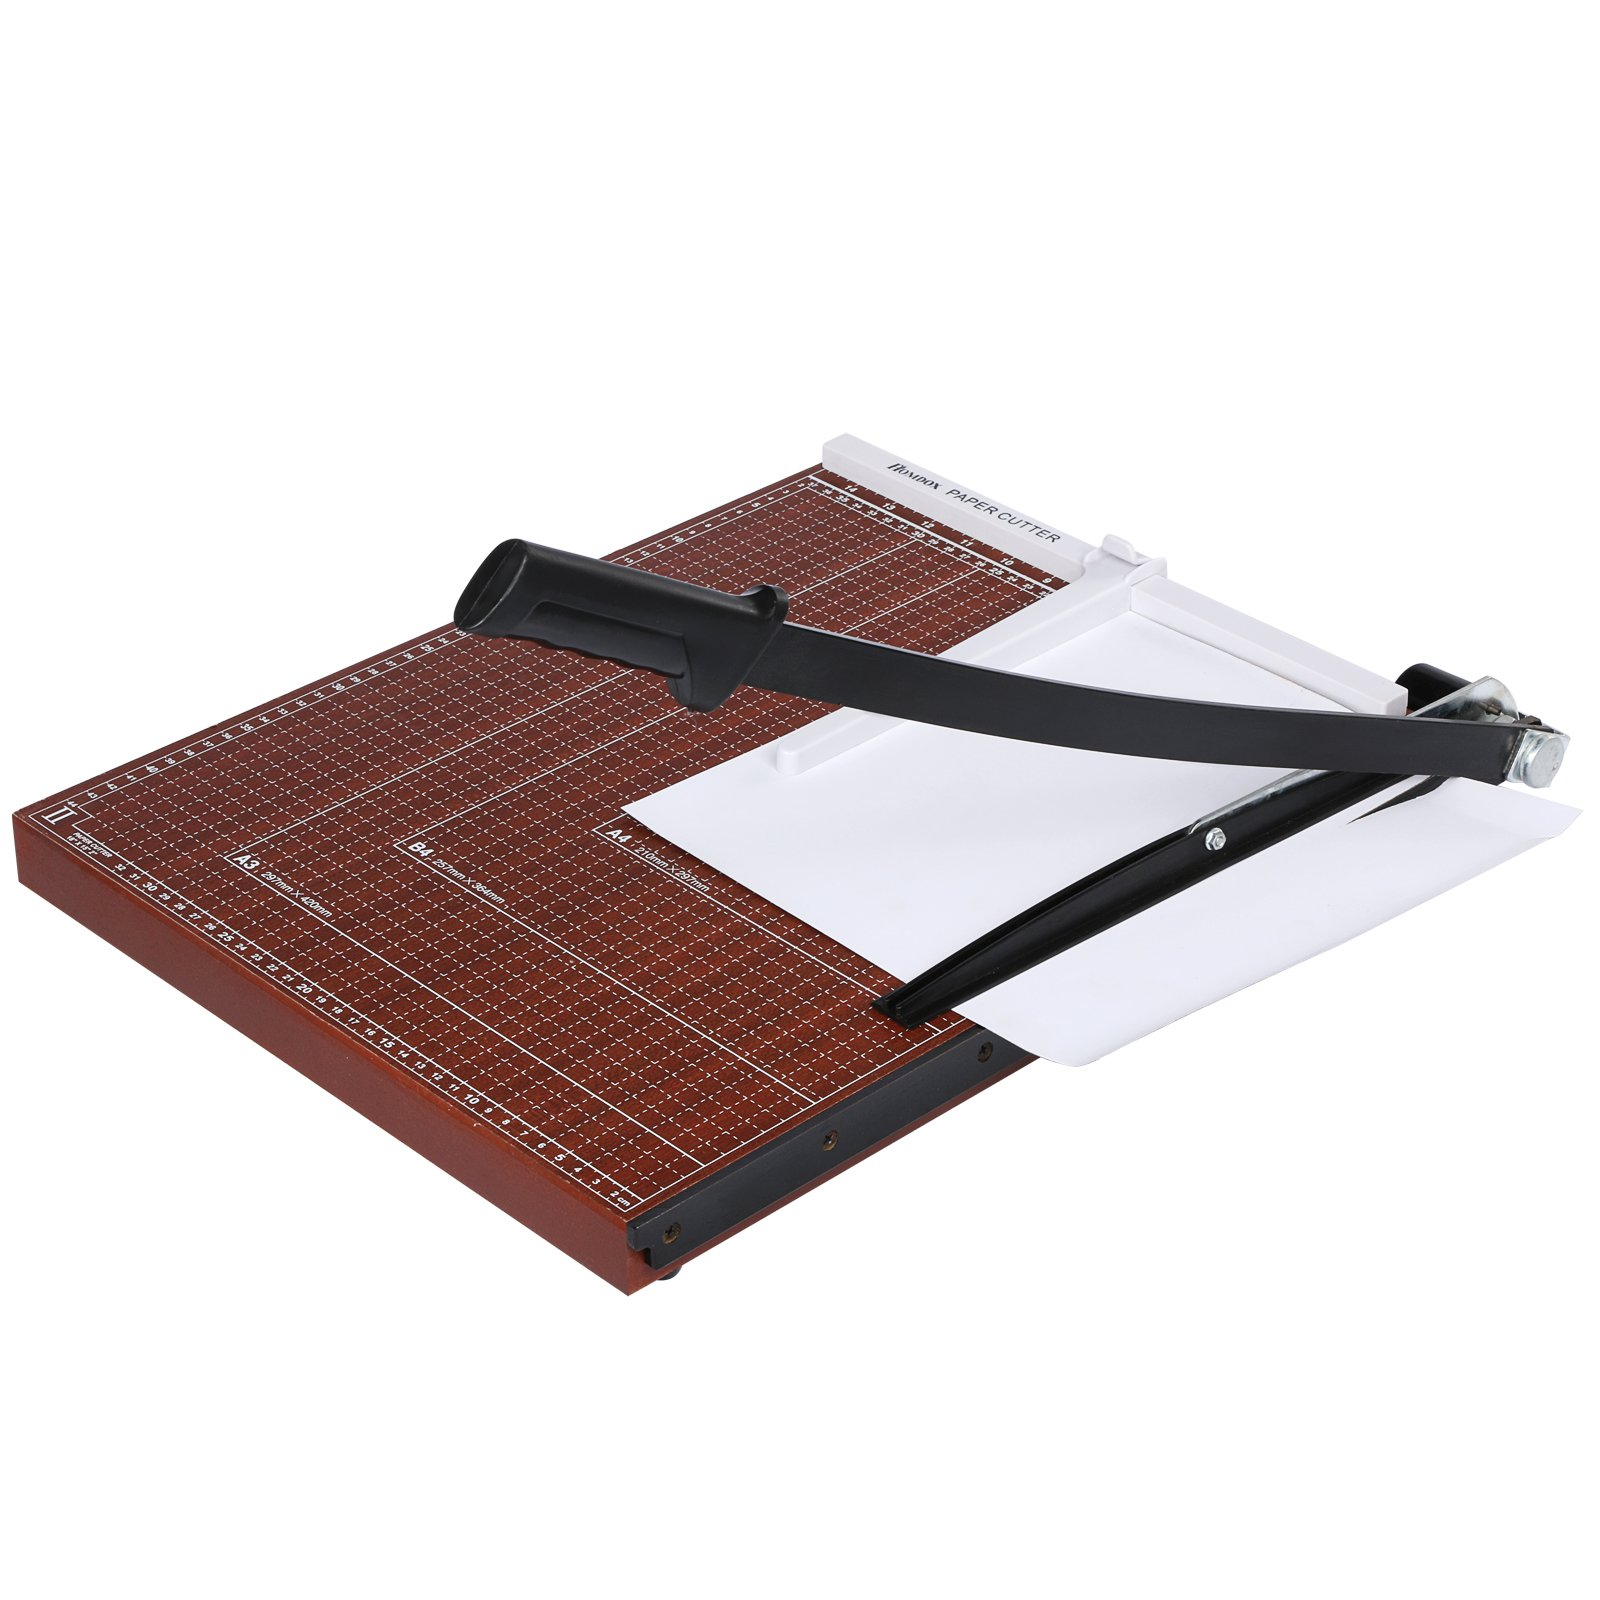 A3 Paper Trimmer, shaofu Professional Wooden Guillotine Paper Cutter Machine 12 Sheet Capacity for Home Office (A3)